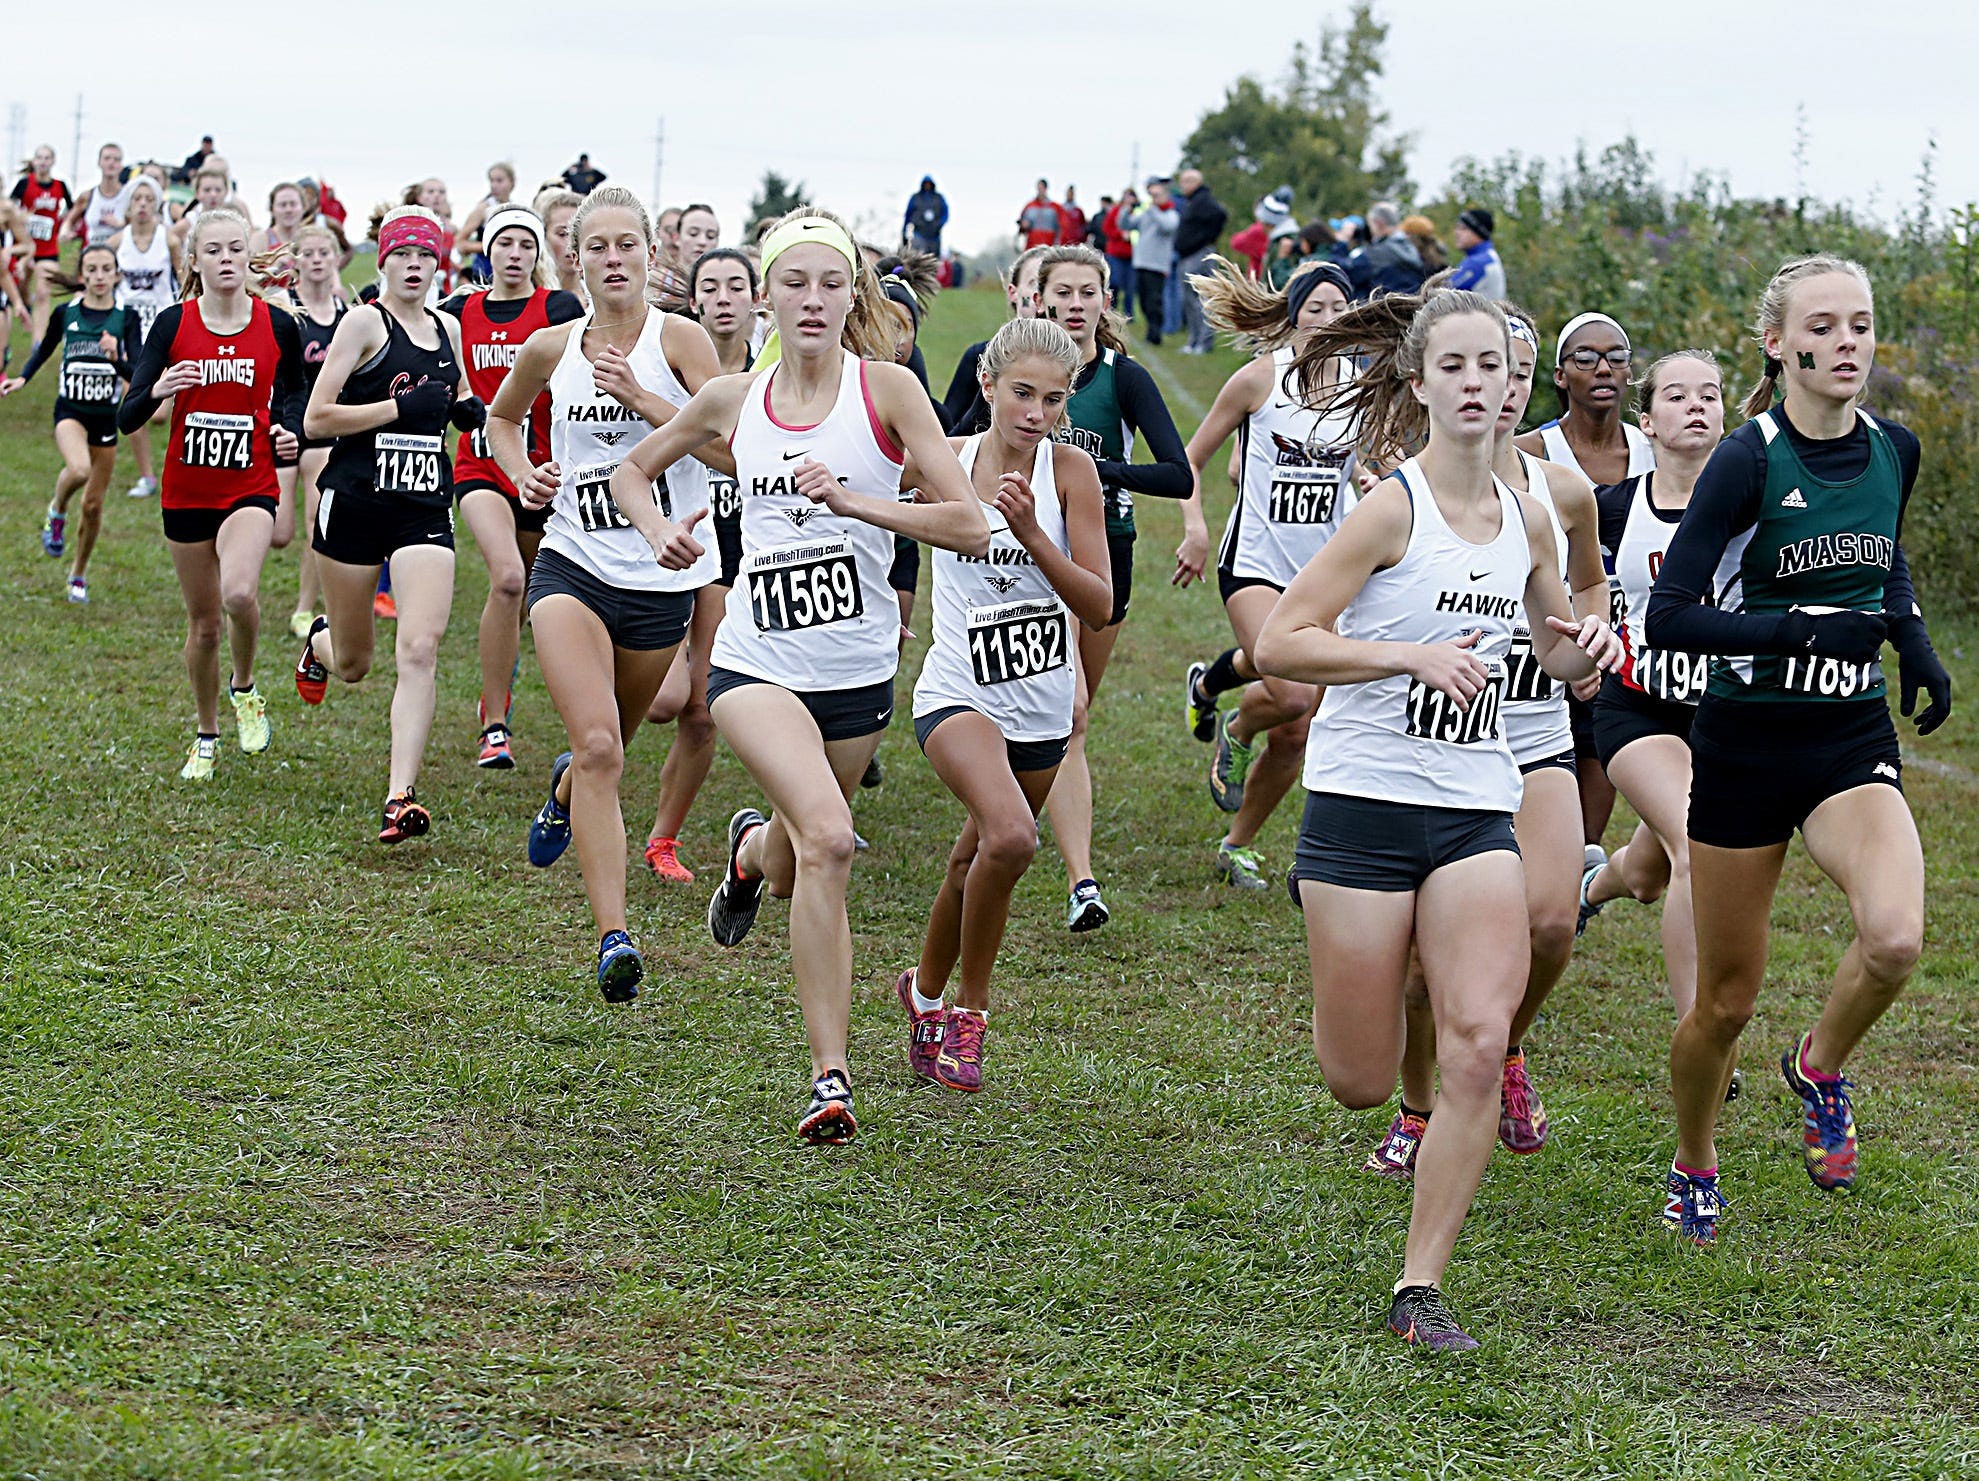 The Lakota East girls run together at the start of the Greater Miami Conference Girls and Boys Cross Country Championships at Voice of America Park in West Chester Saturday, Oct. 13, 2018. The Lakota East girls finished first in team points.